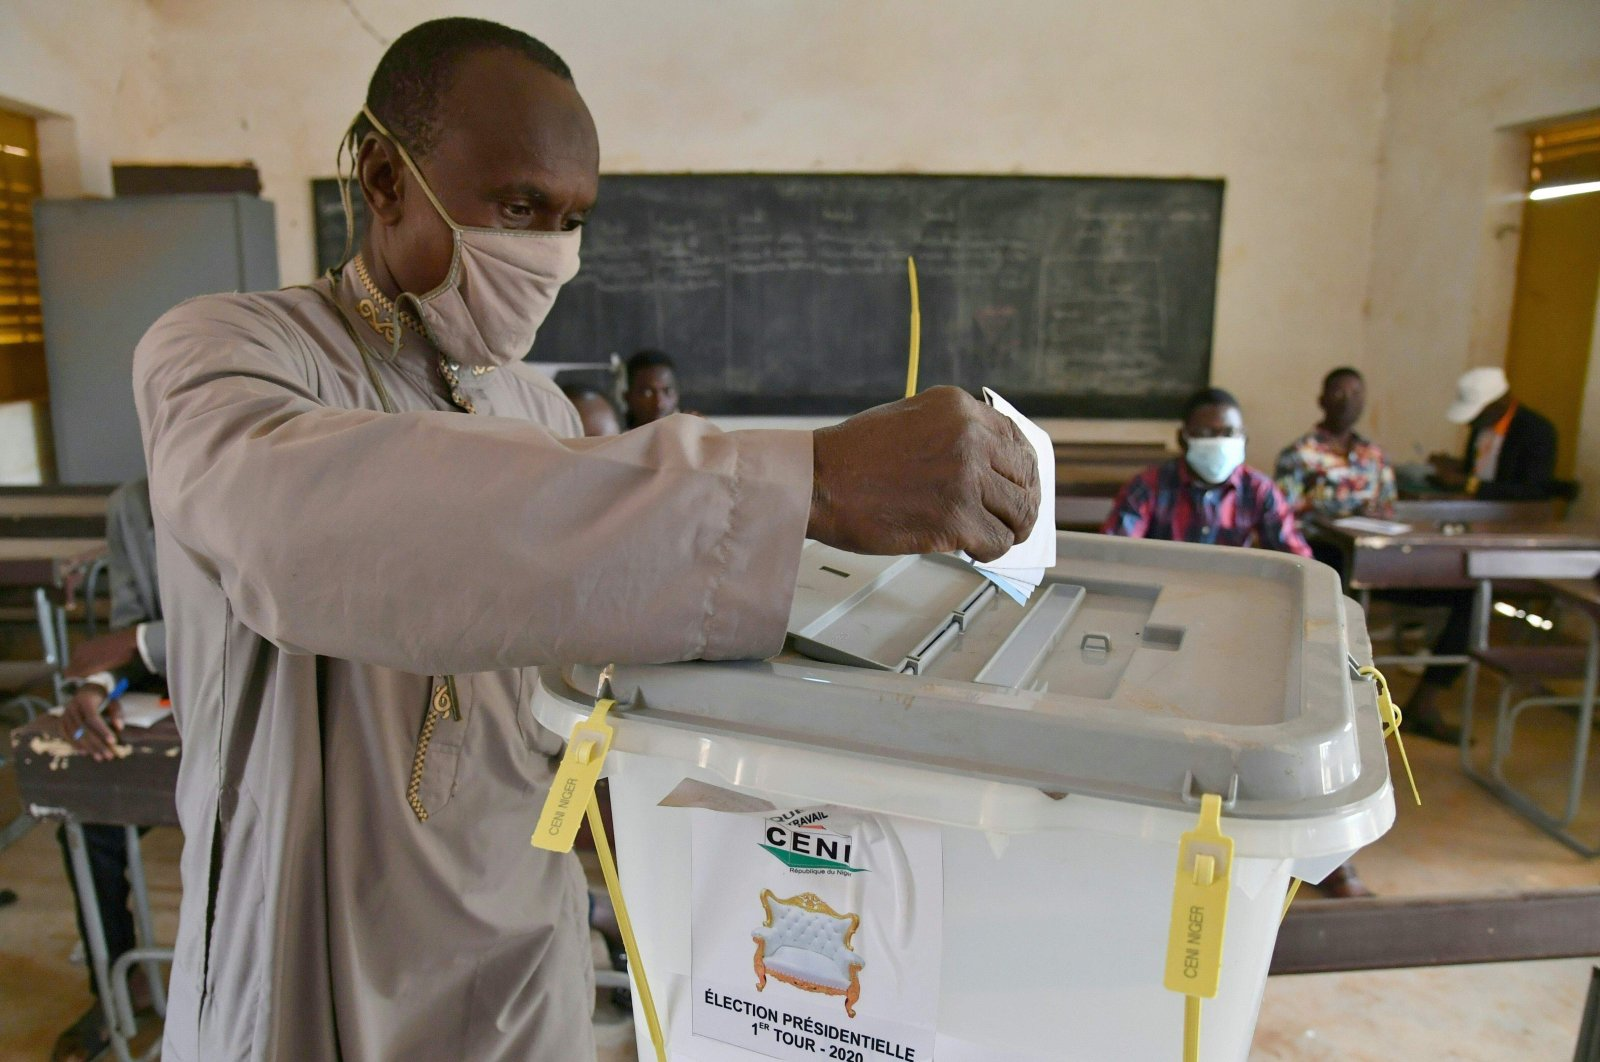 A man casts his ballot at a polling station in Niamey during Niger's presidential and legislative elections, Dec. 27, 2020. (AFP Photo)